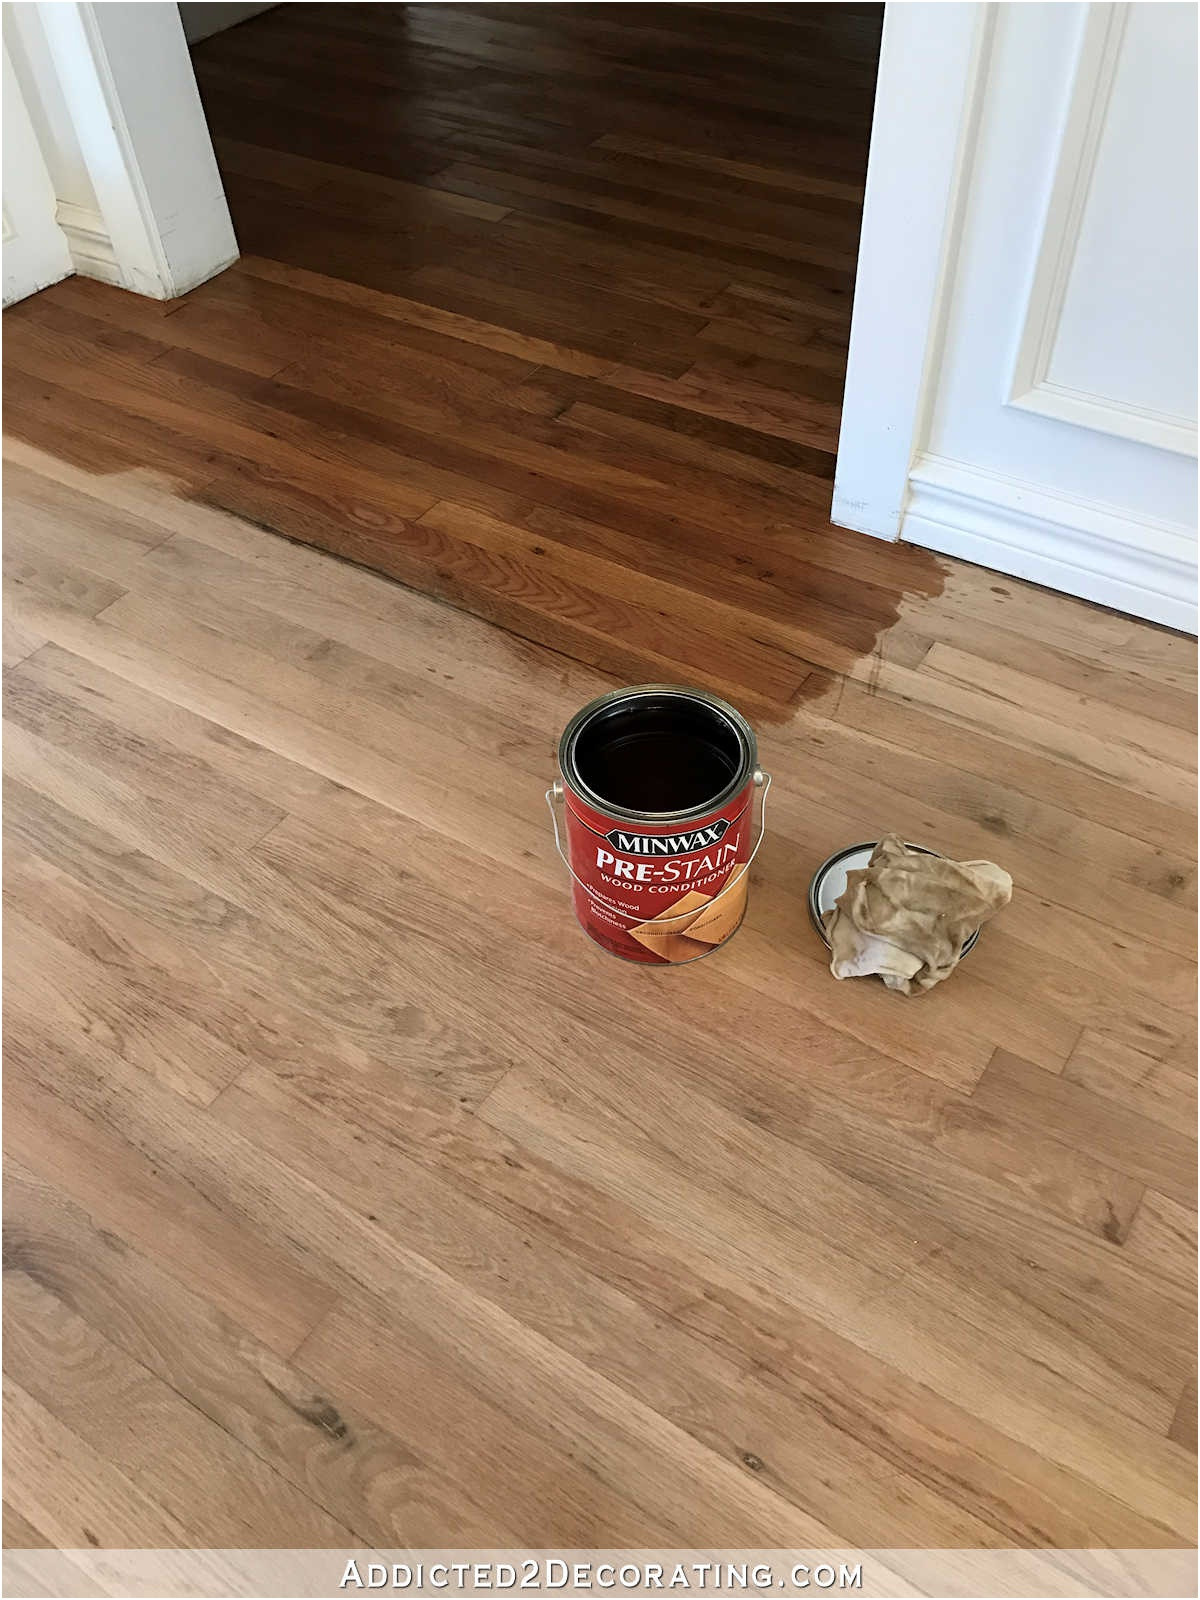 acacia hardwood flooring lumber liquidators of how to replace laminate flooring lovely adventures in staining my throughout how to replace laminate flooring lovely adventures in staining my red oak hardwood floors products amp